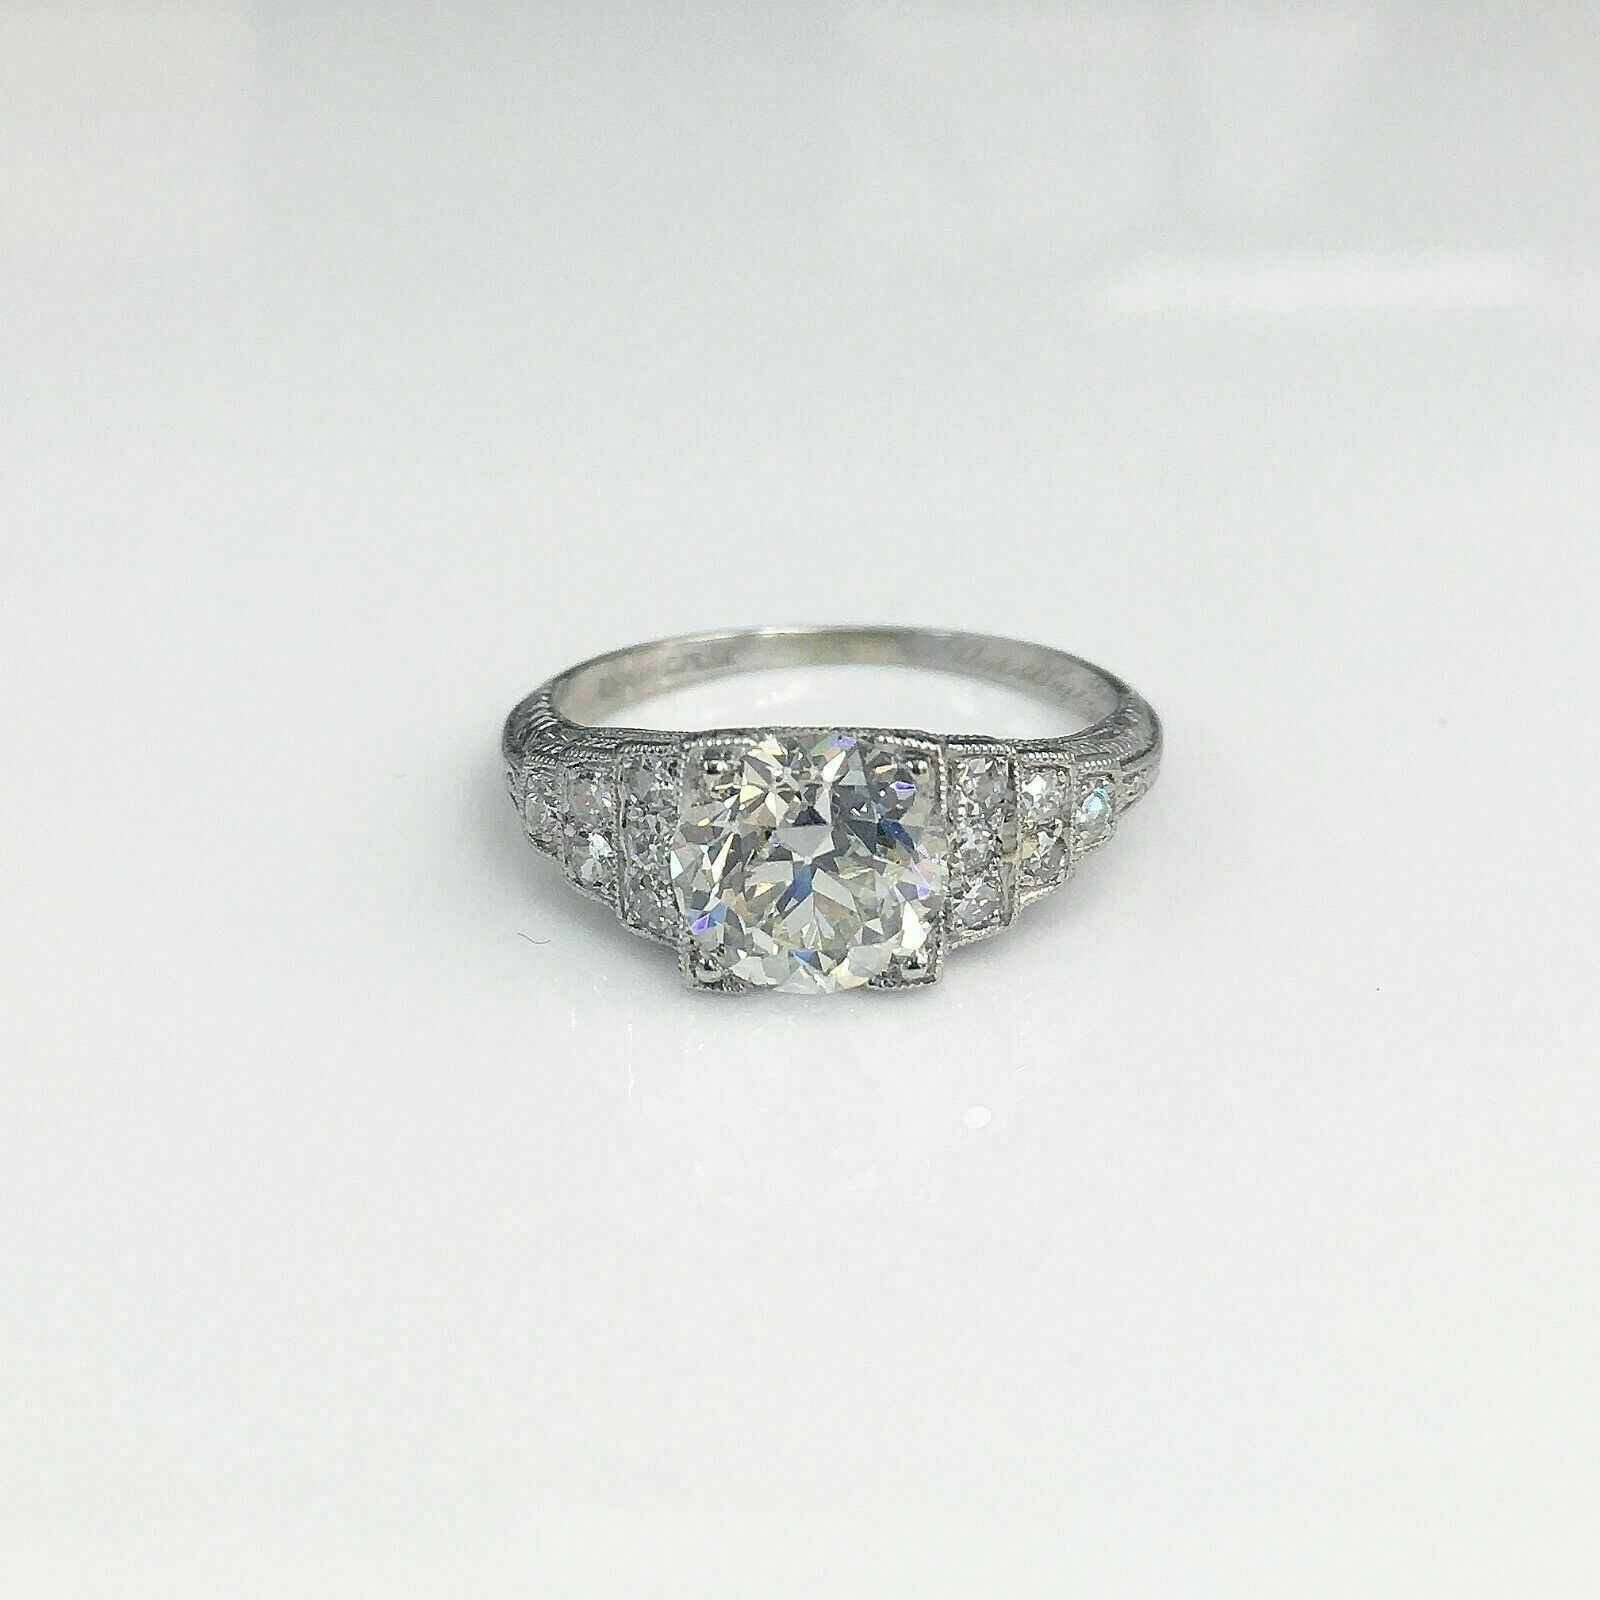 1.70 Carats Antique Art Deco Wedding Diamond Ring GIA Certificate Included 1930s